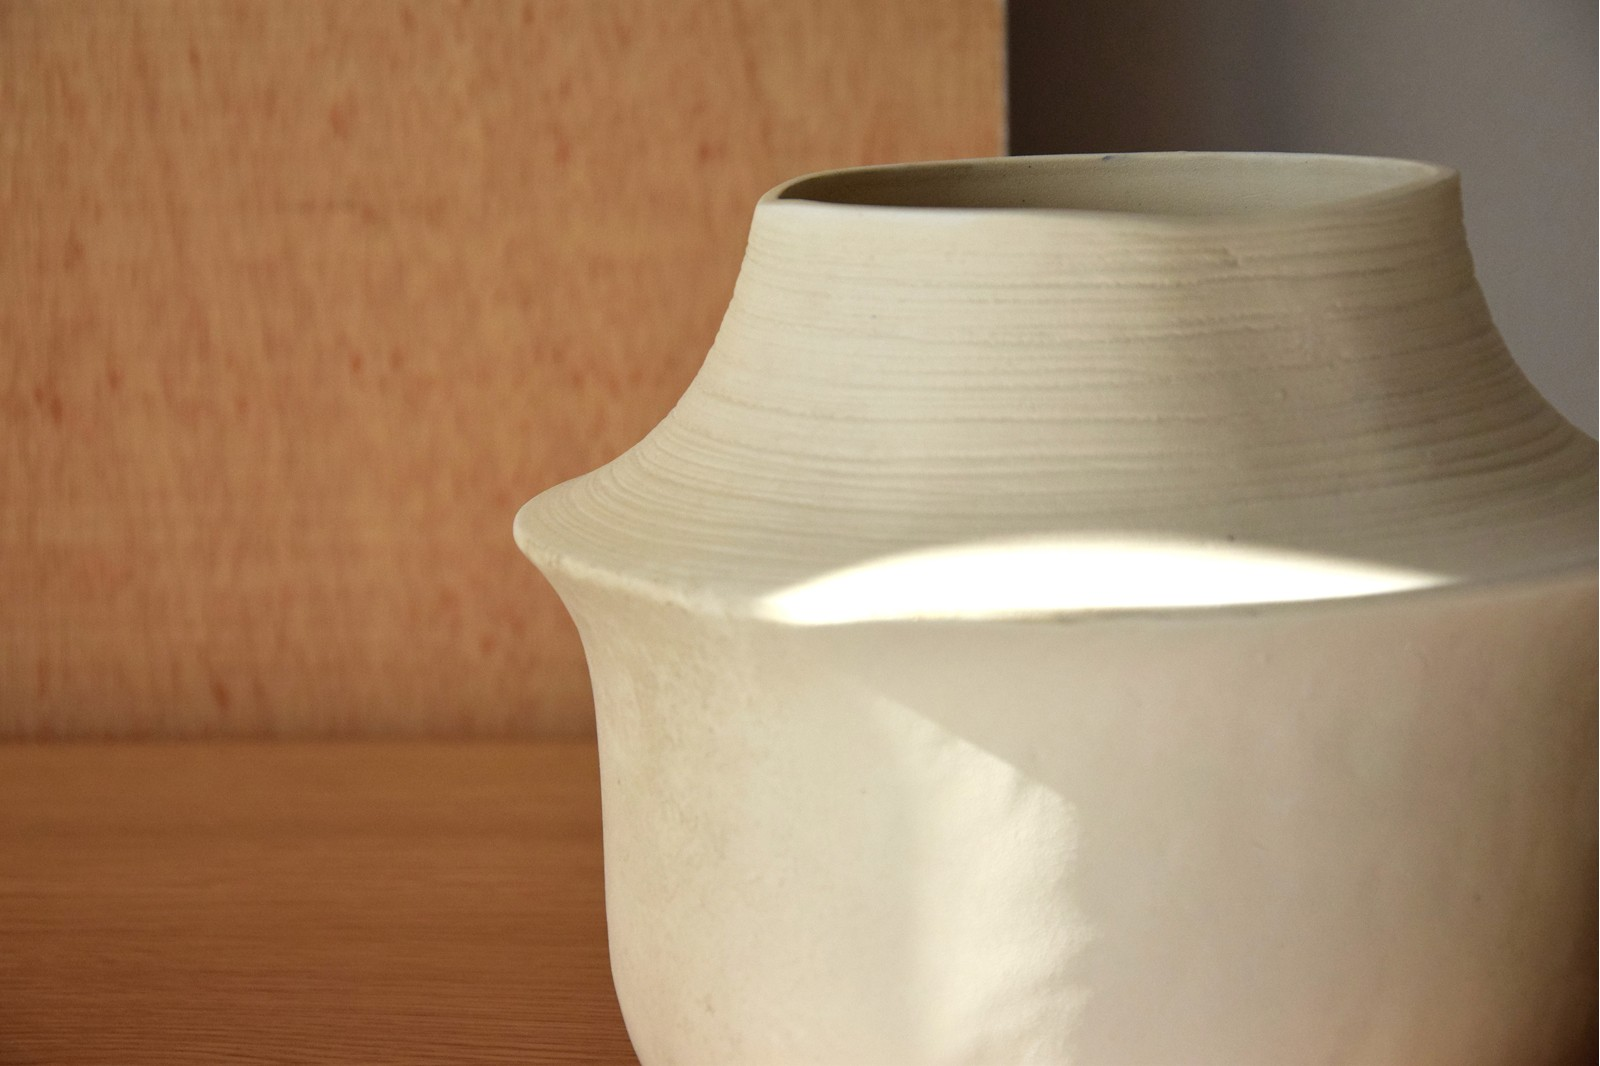 STONE COLLECTION: CERAMIC VASES AND CENTERPIECE